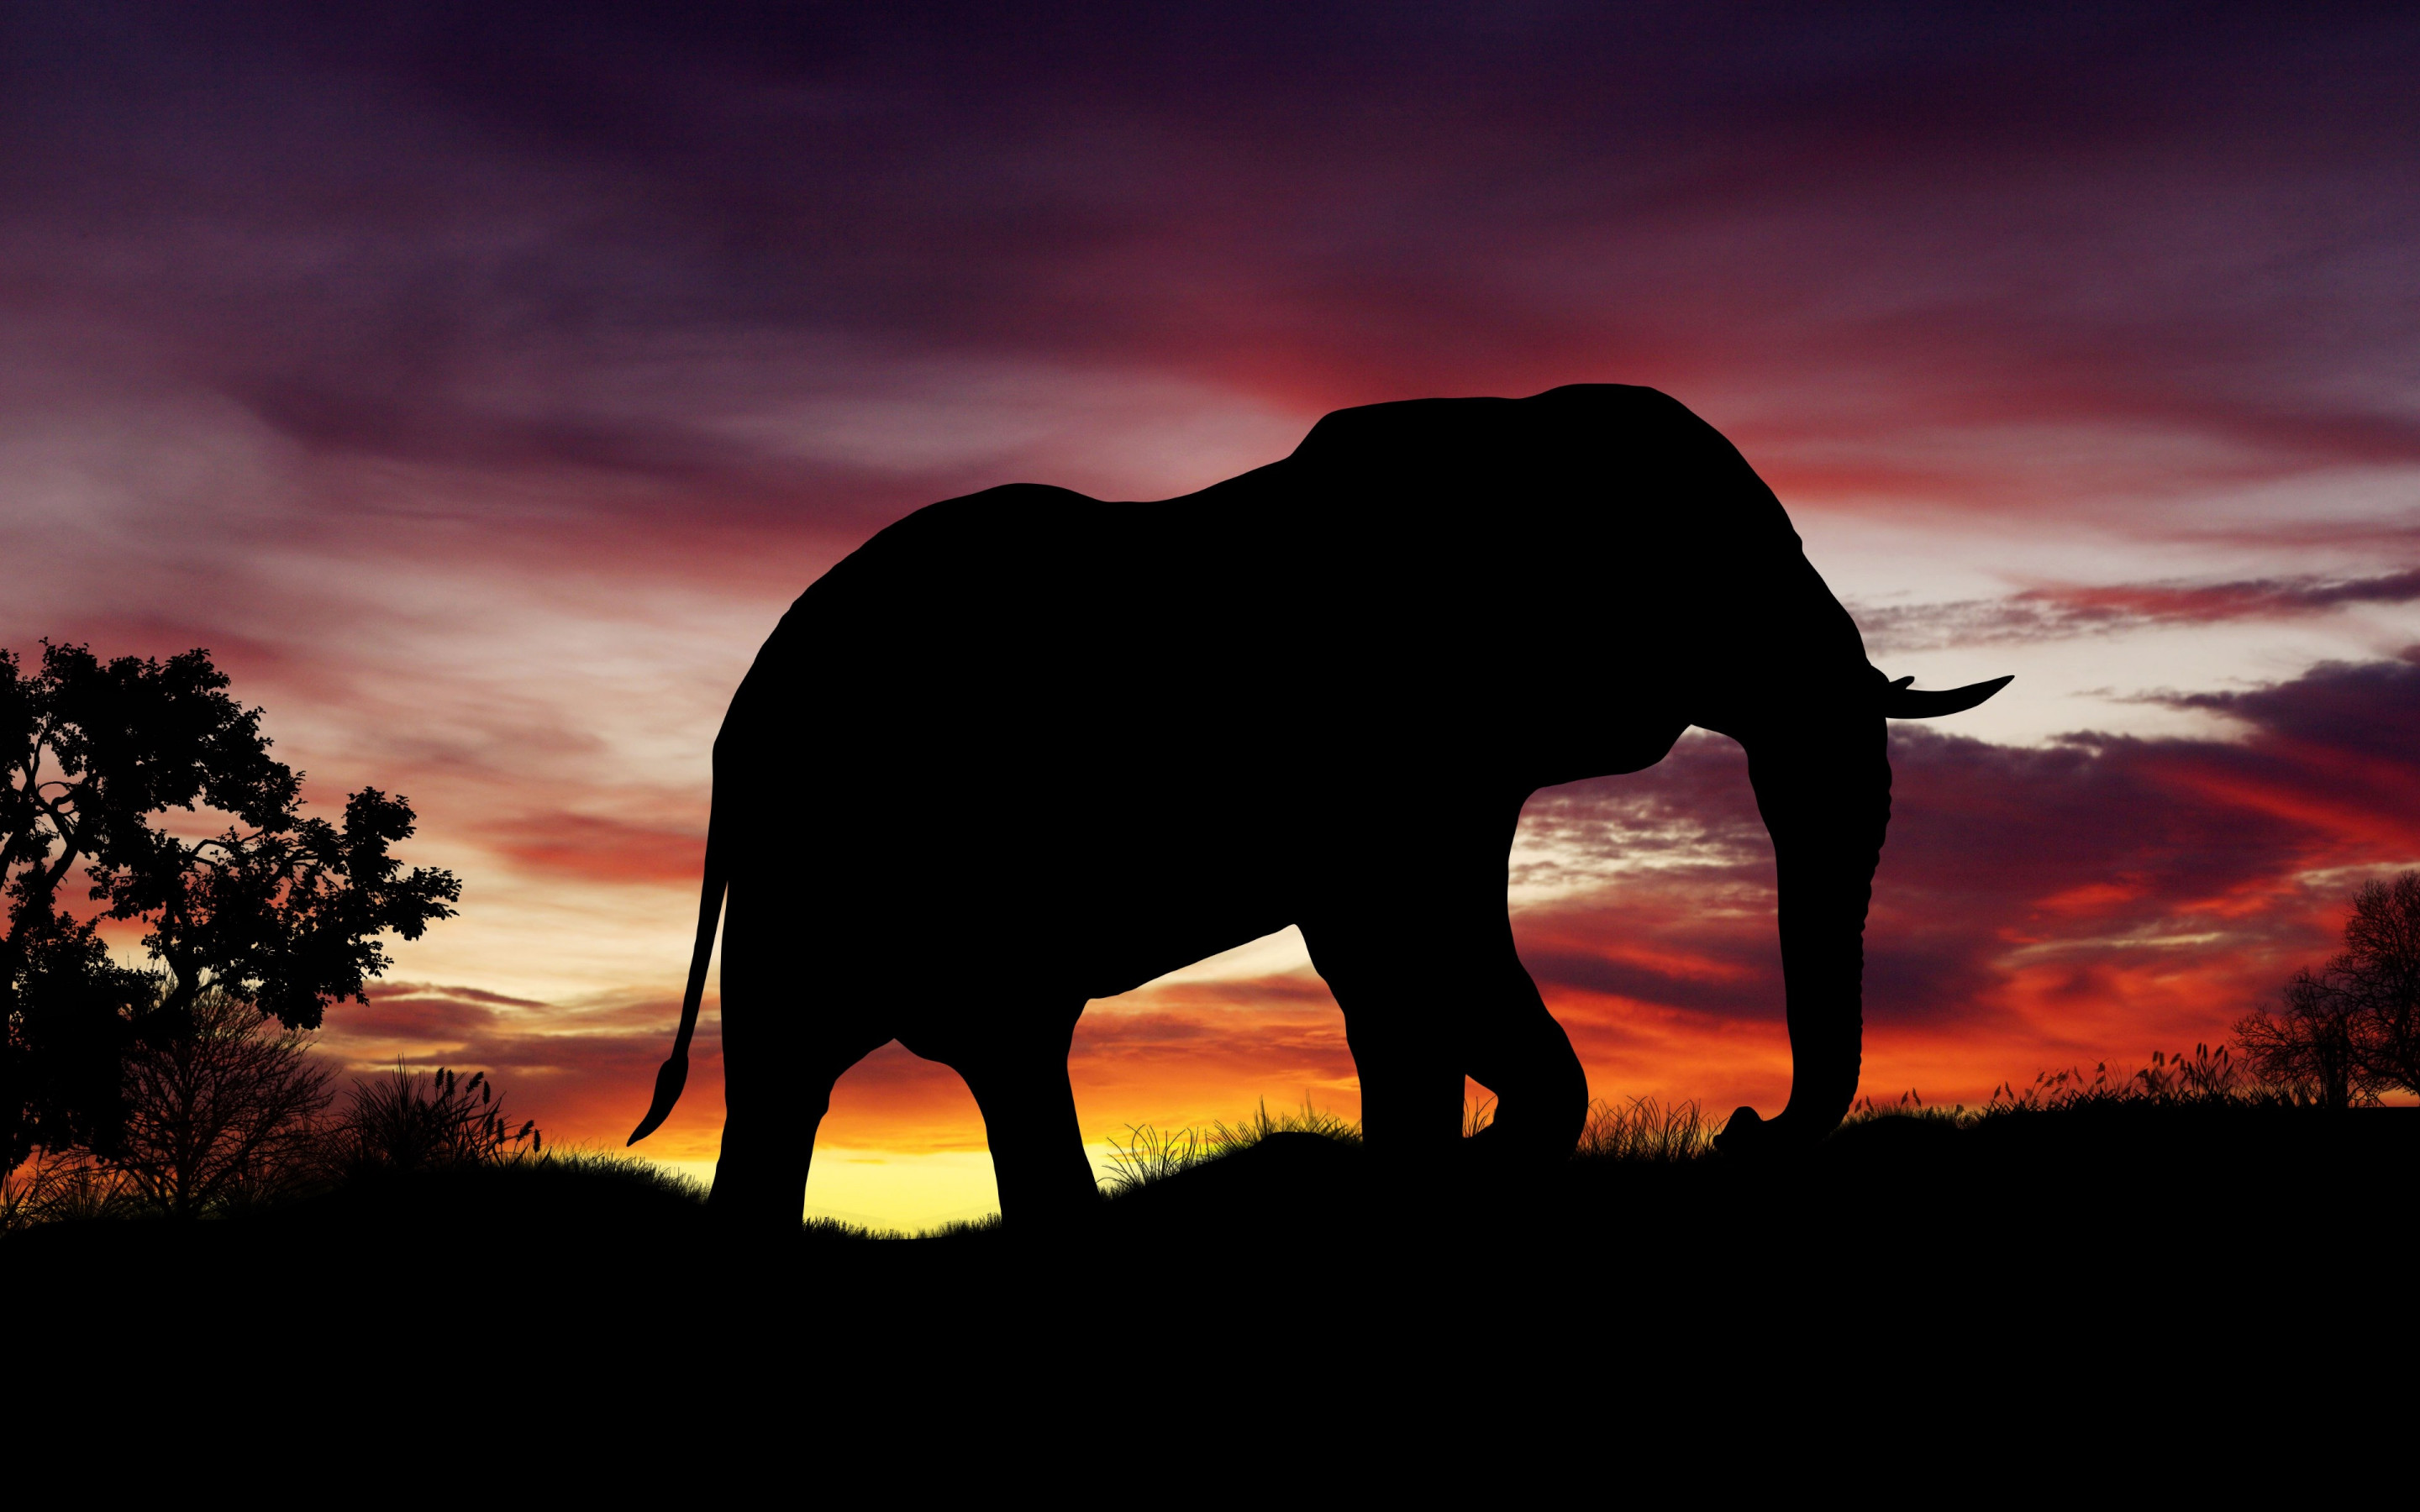 Elephant silhouette | 2880x1800 wallpaper